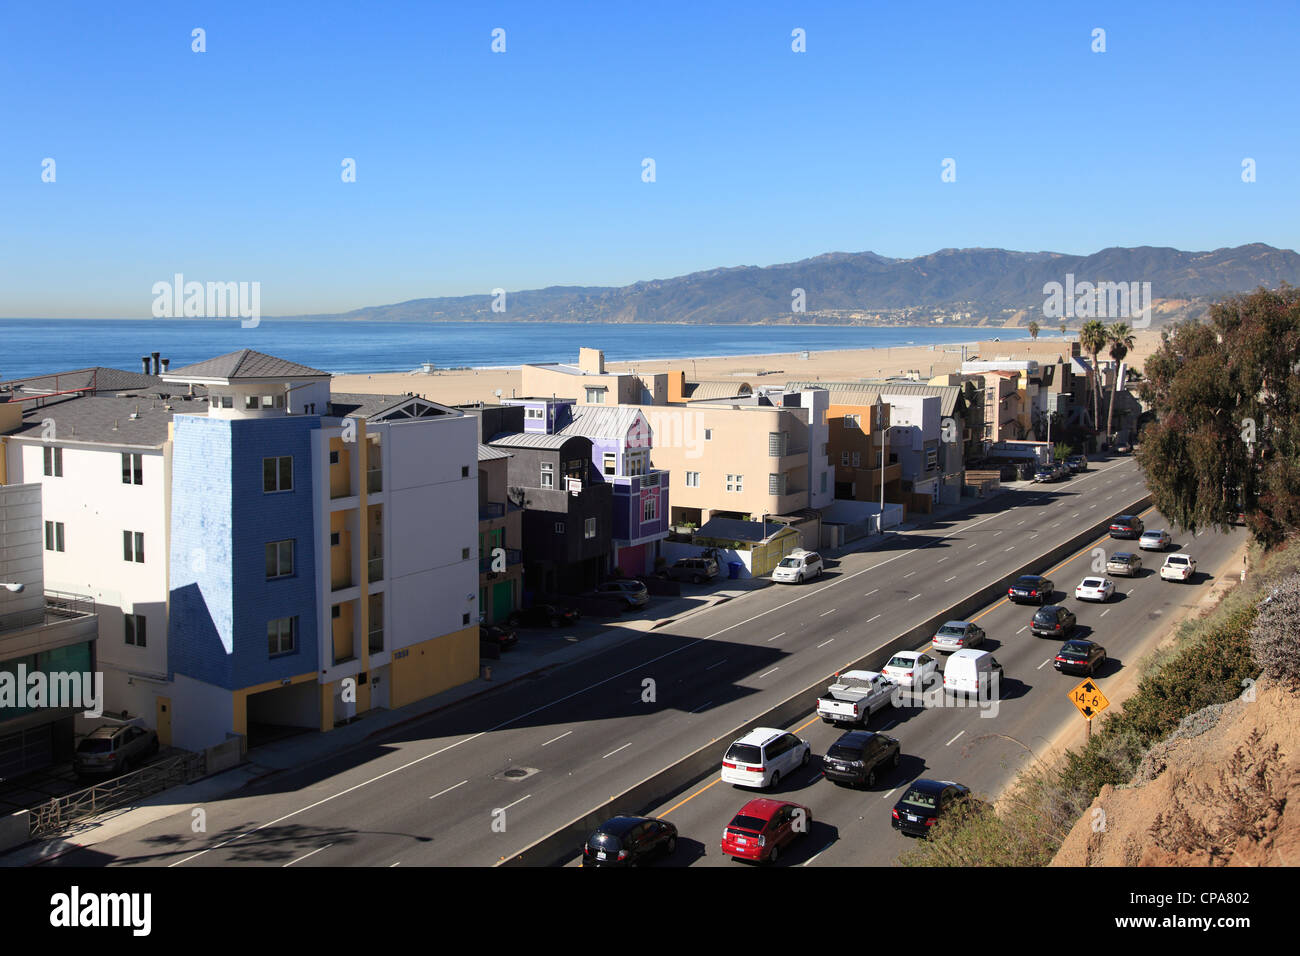 Traffic Pacific Coast Highway PCH Santa Monica Los Angeles California USA - Stock Image